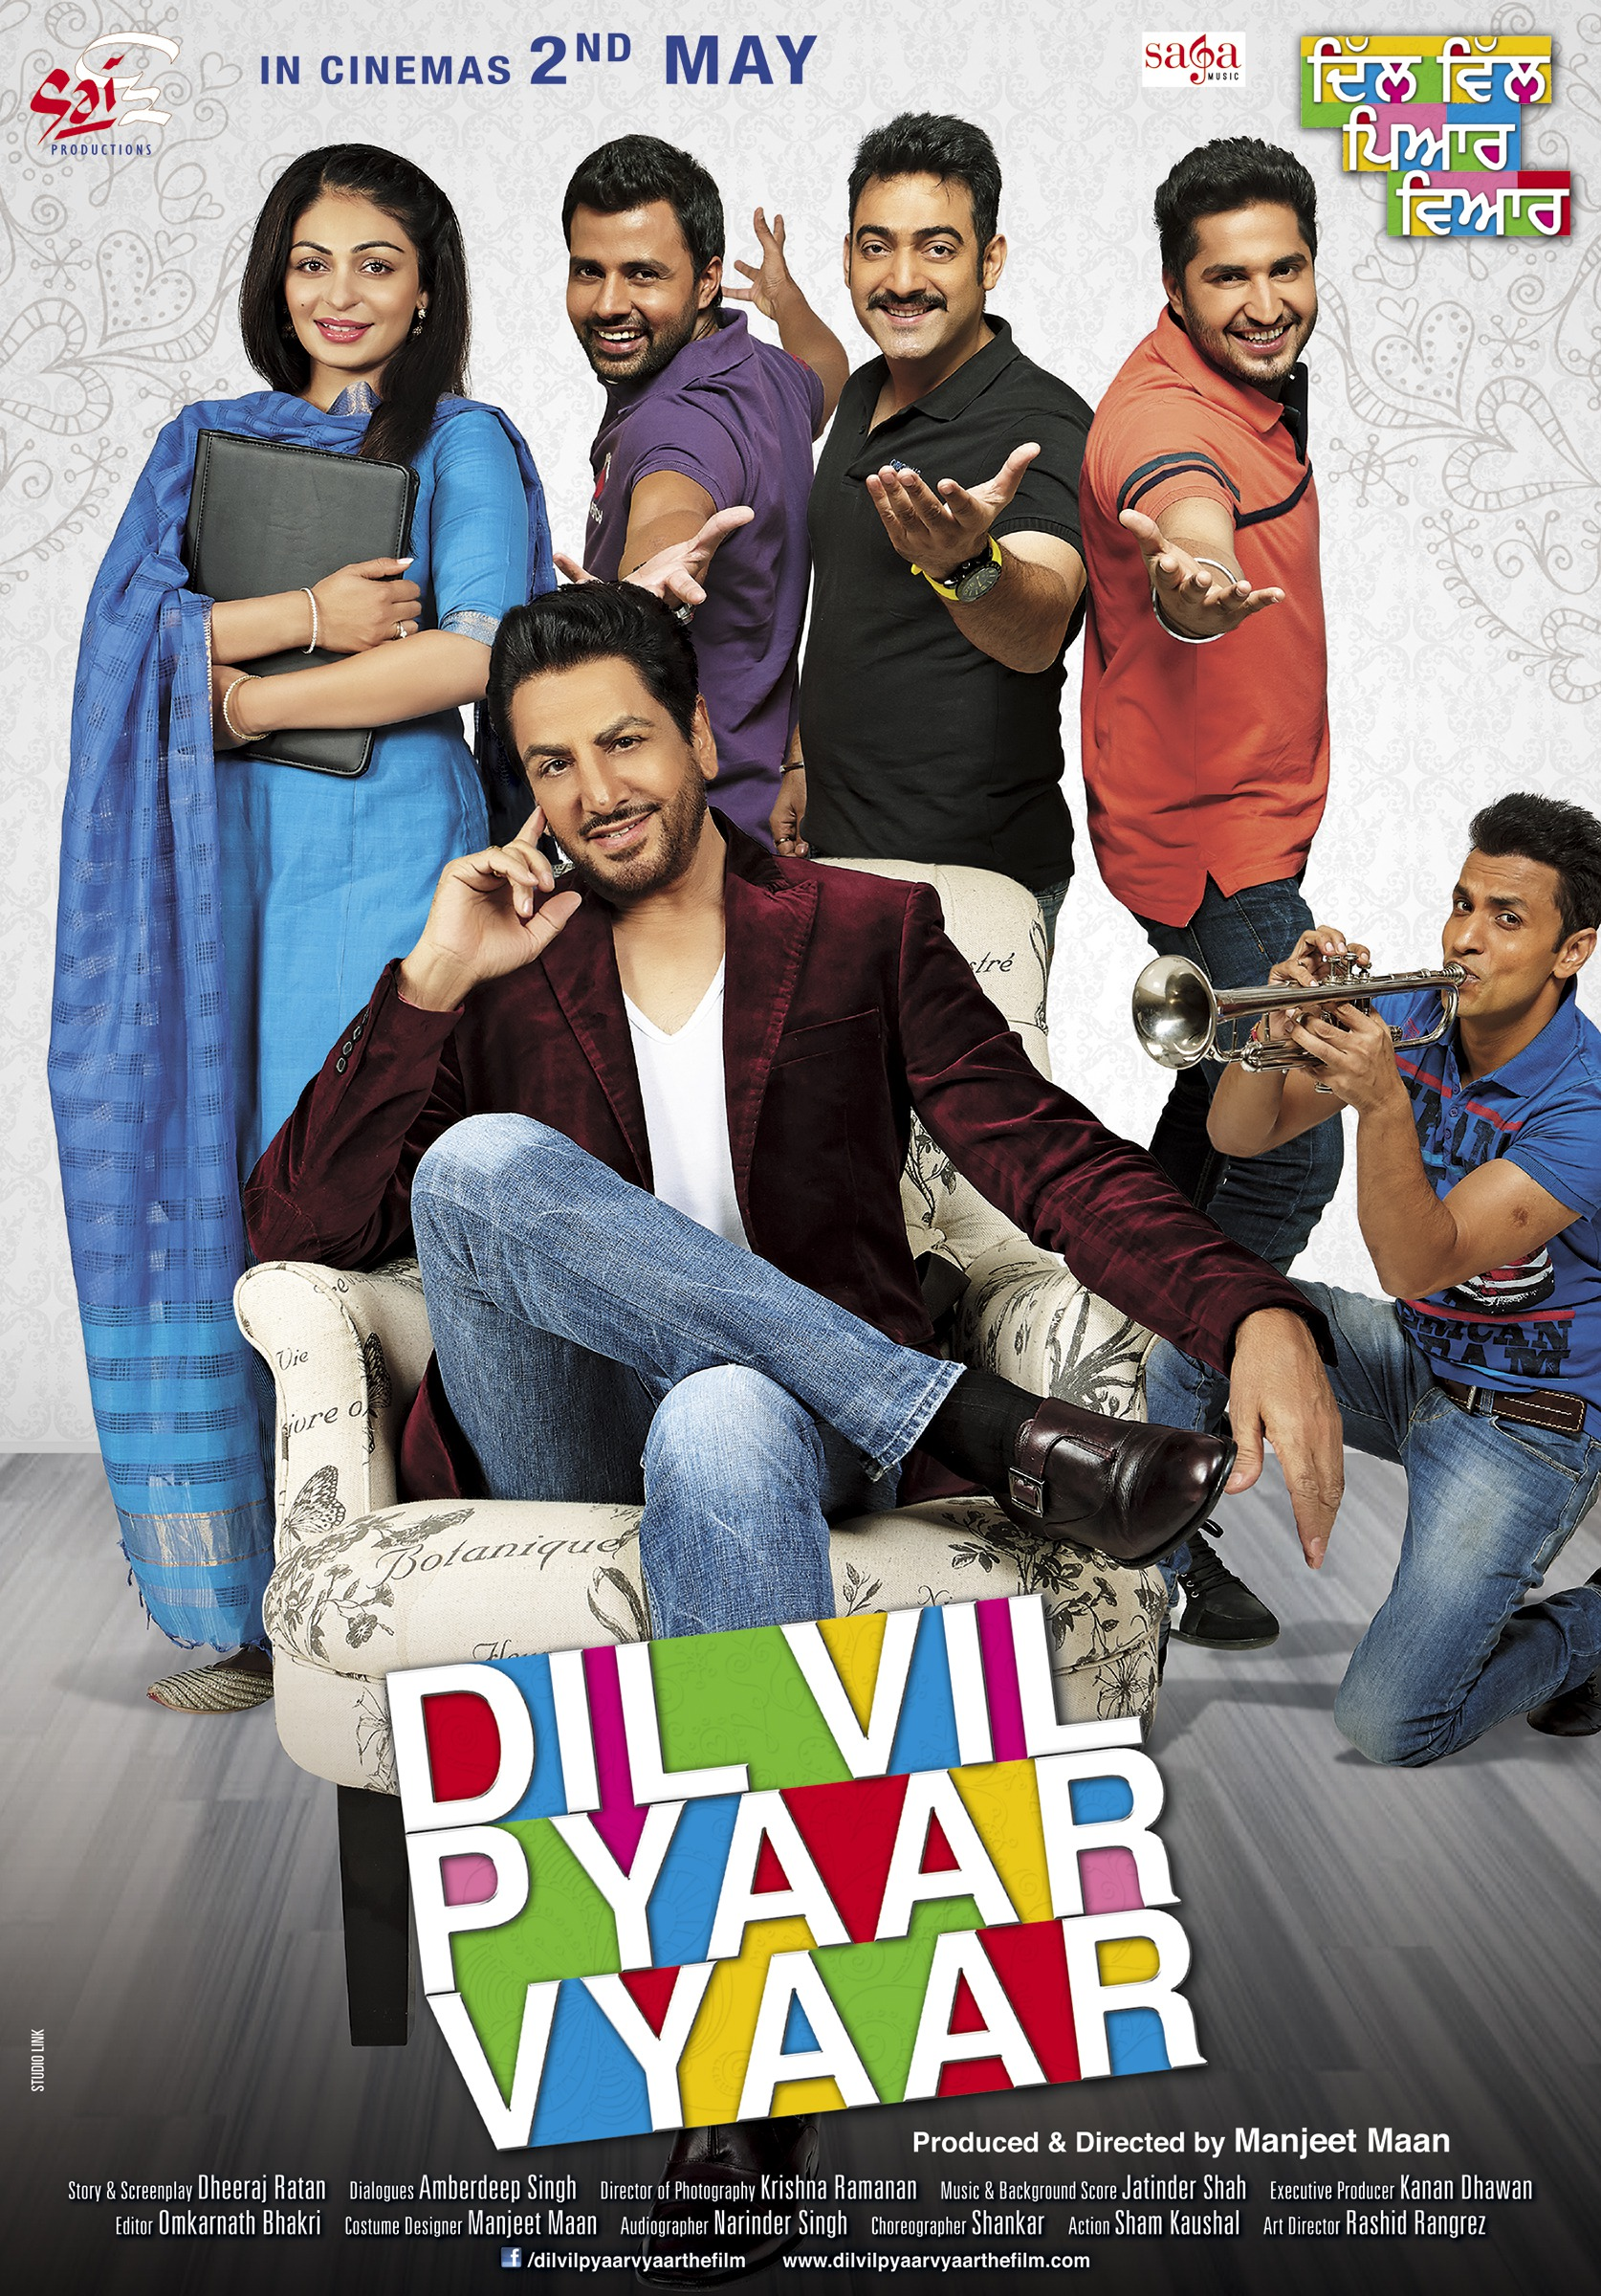 Dil Vil Pyaar Vyaar (2014) Punjabi Movie 720p AMZN HDRip x264 ESubs 1.1GB